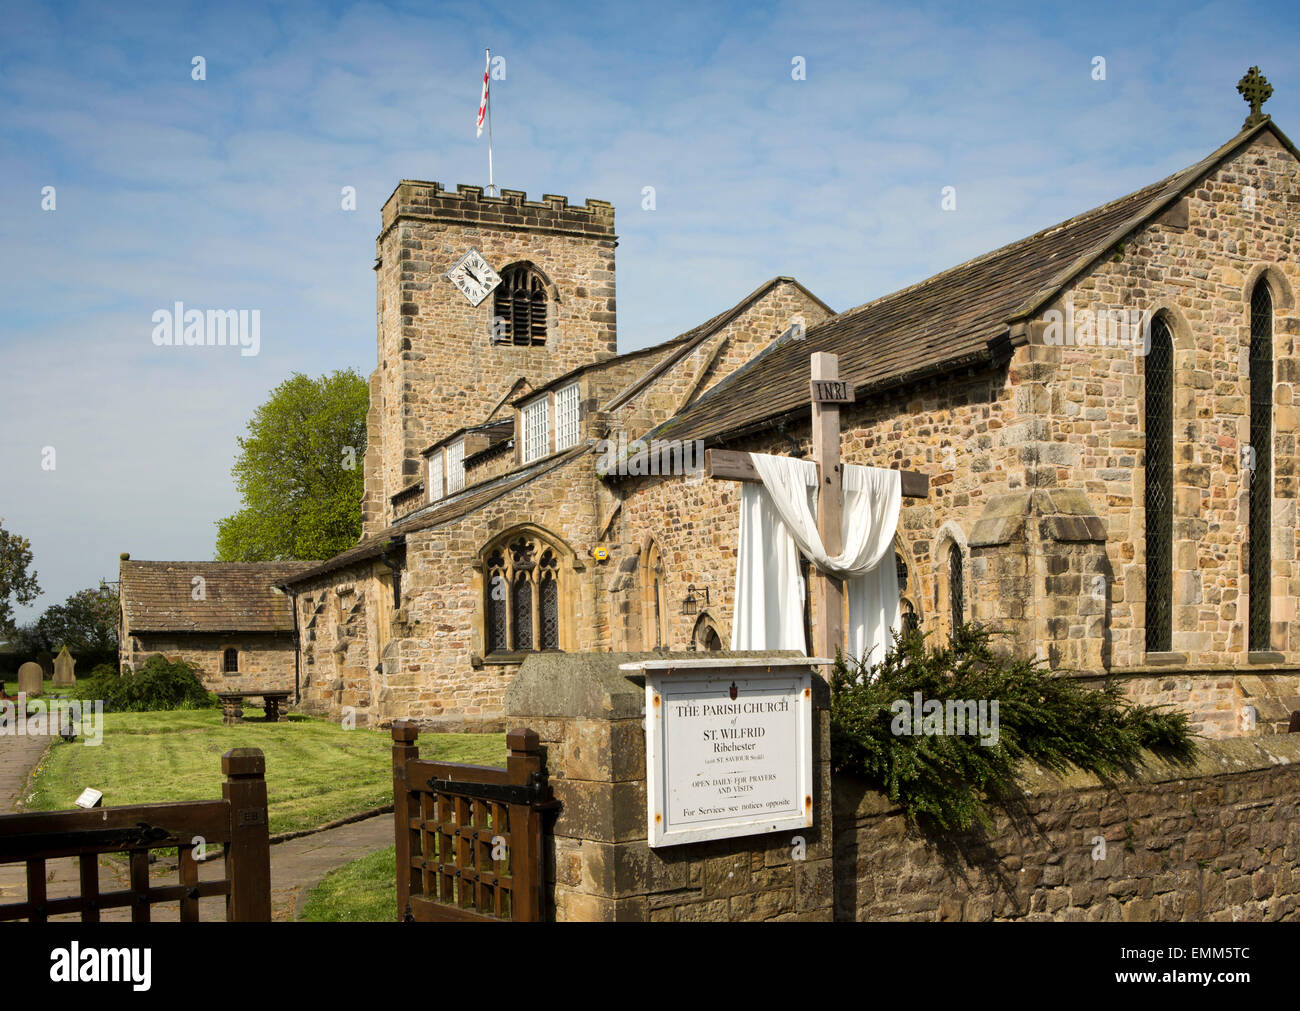 UK, England, Lancashire, Ribble Valley, Ribchester, Parish Church of St Wilfrid, with 1812 clock in tower - Stock Image